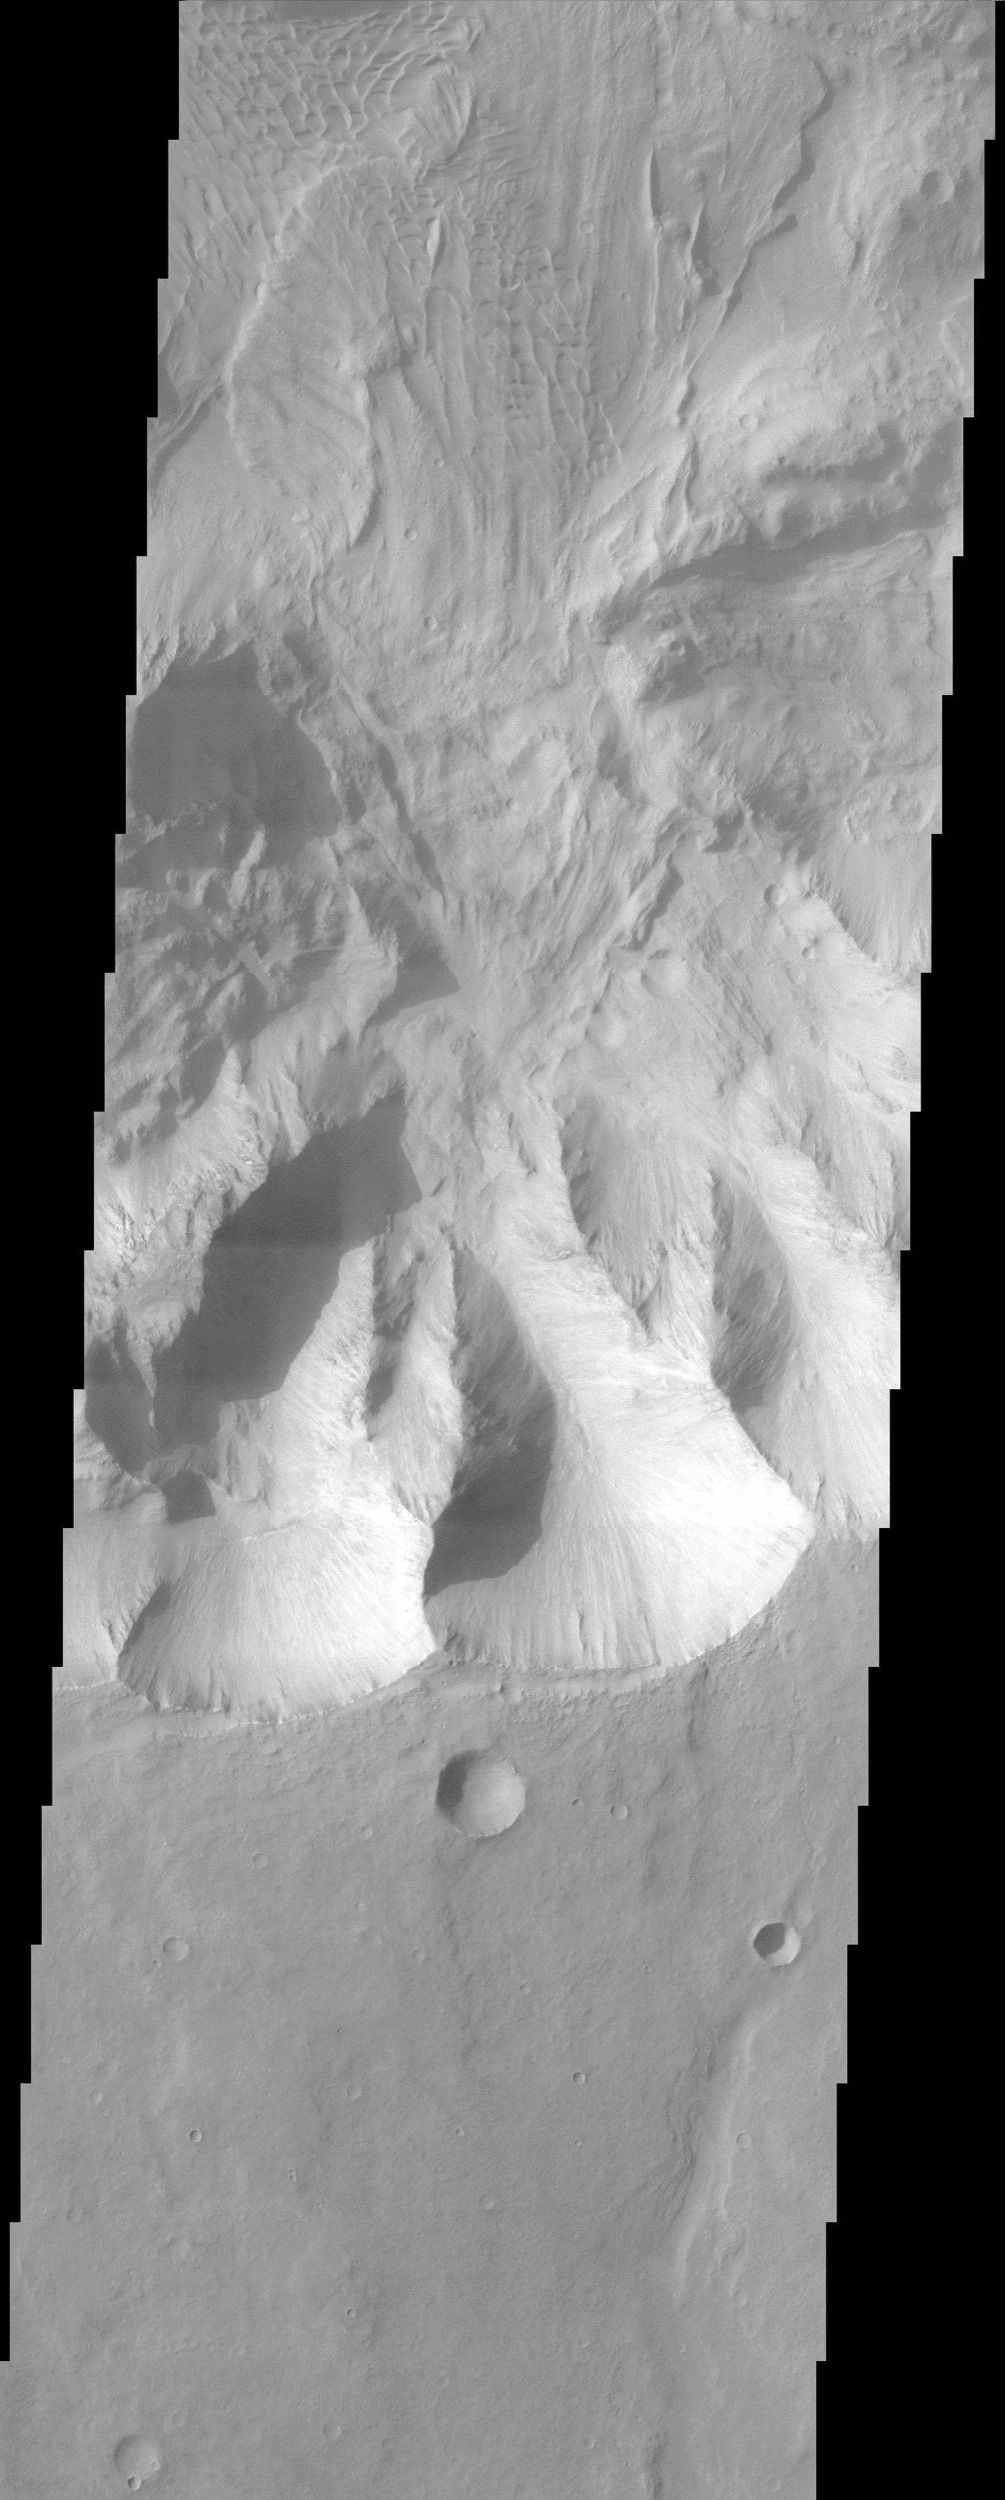 Coprates Chasma comprises the central portion of the Valles Marineris canyon system complex. This image from NASA's Mars Odyssey spacecraft of the southern wall of Coprates Chasma contains a landslide deposit with dunes over portions of slide.